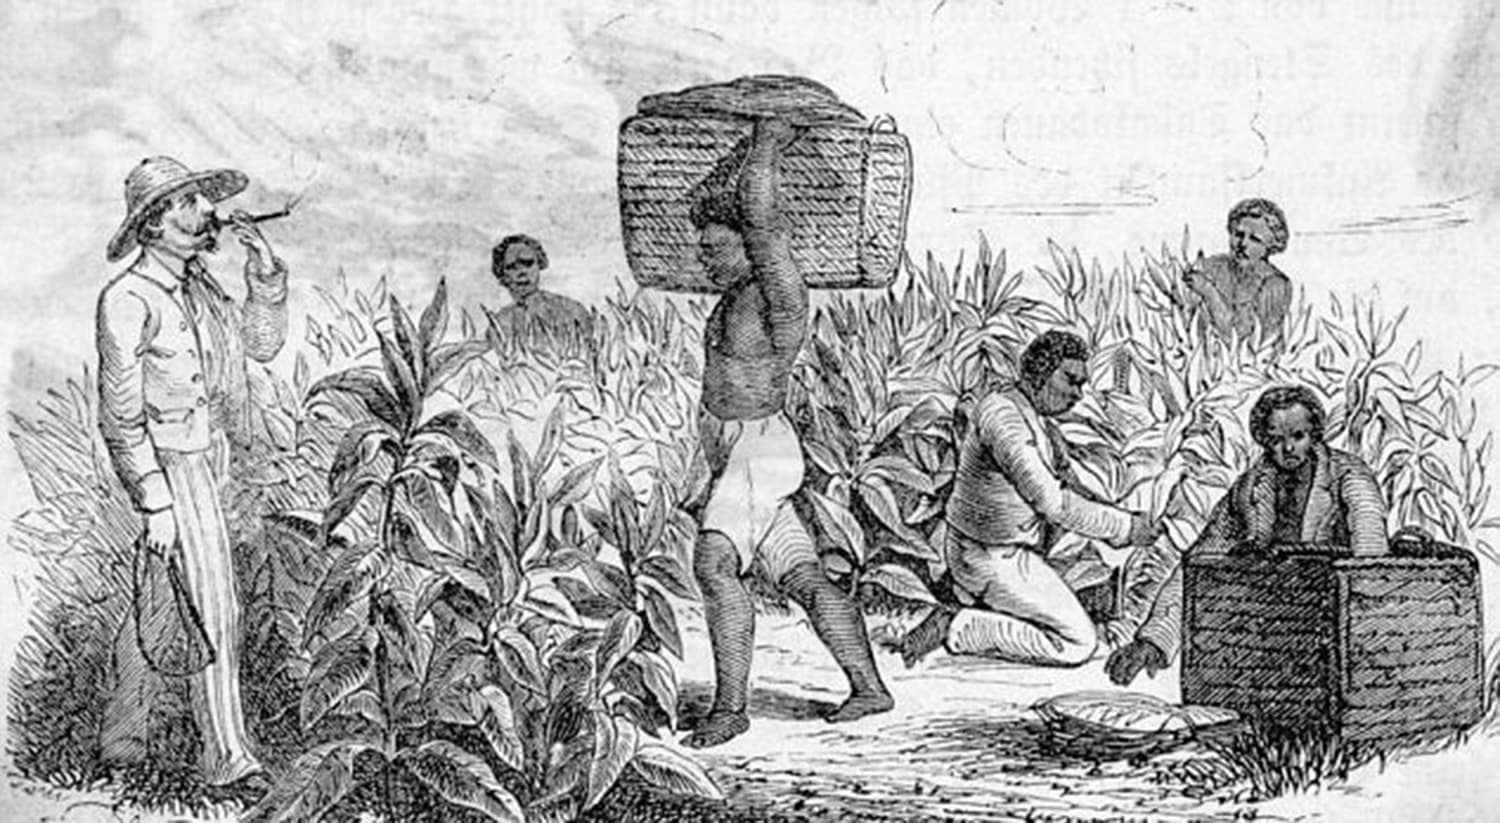 Blacks from Africa were brought to the Caribbean islands by colonialists as slaves. -- Photo: Daily Mail.